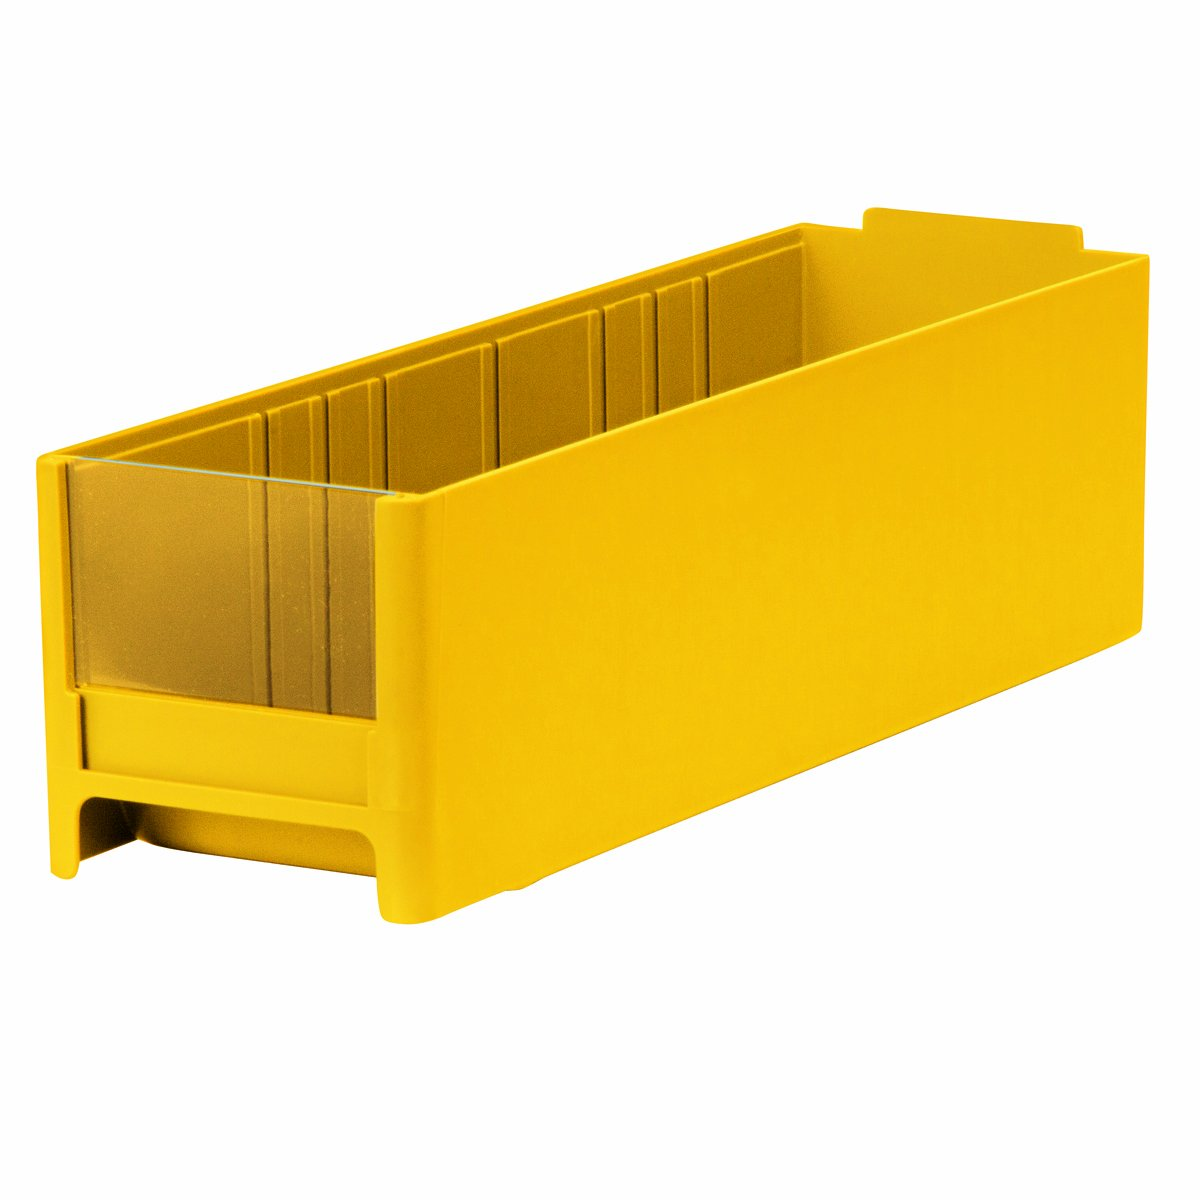 Akro-Mils 20715 Replacement Drawer for 19715 Steel Storage Cabinet, Yellow, Case of 30 by Akro-Mils (Image #1)